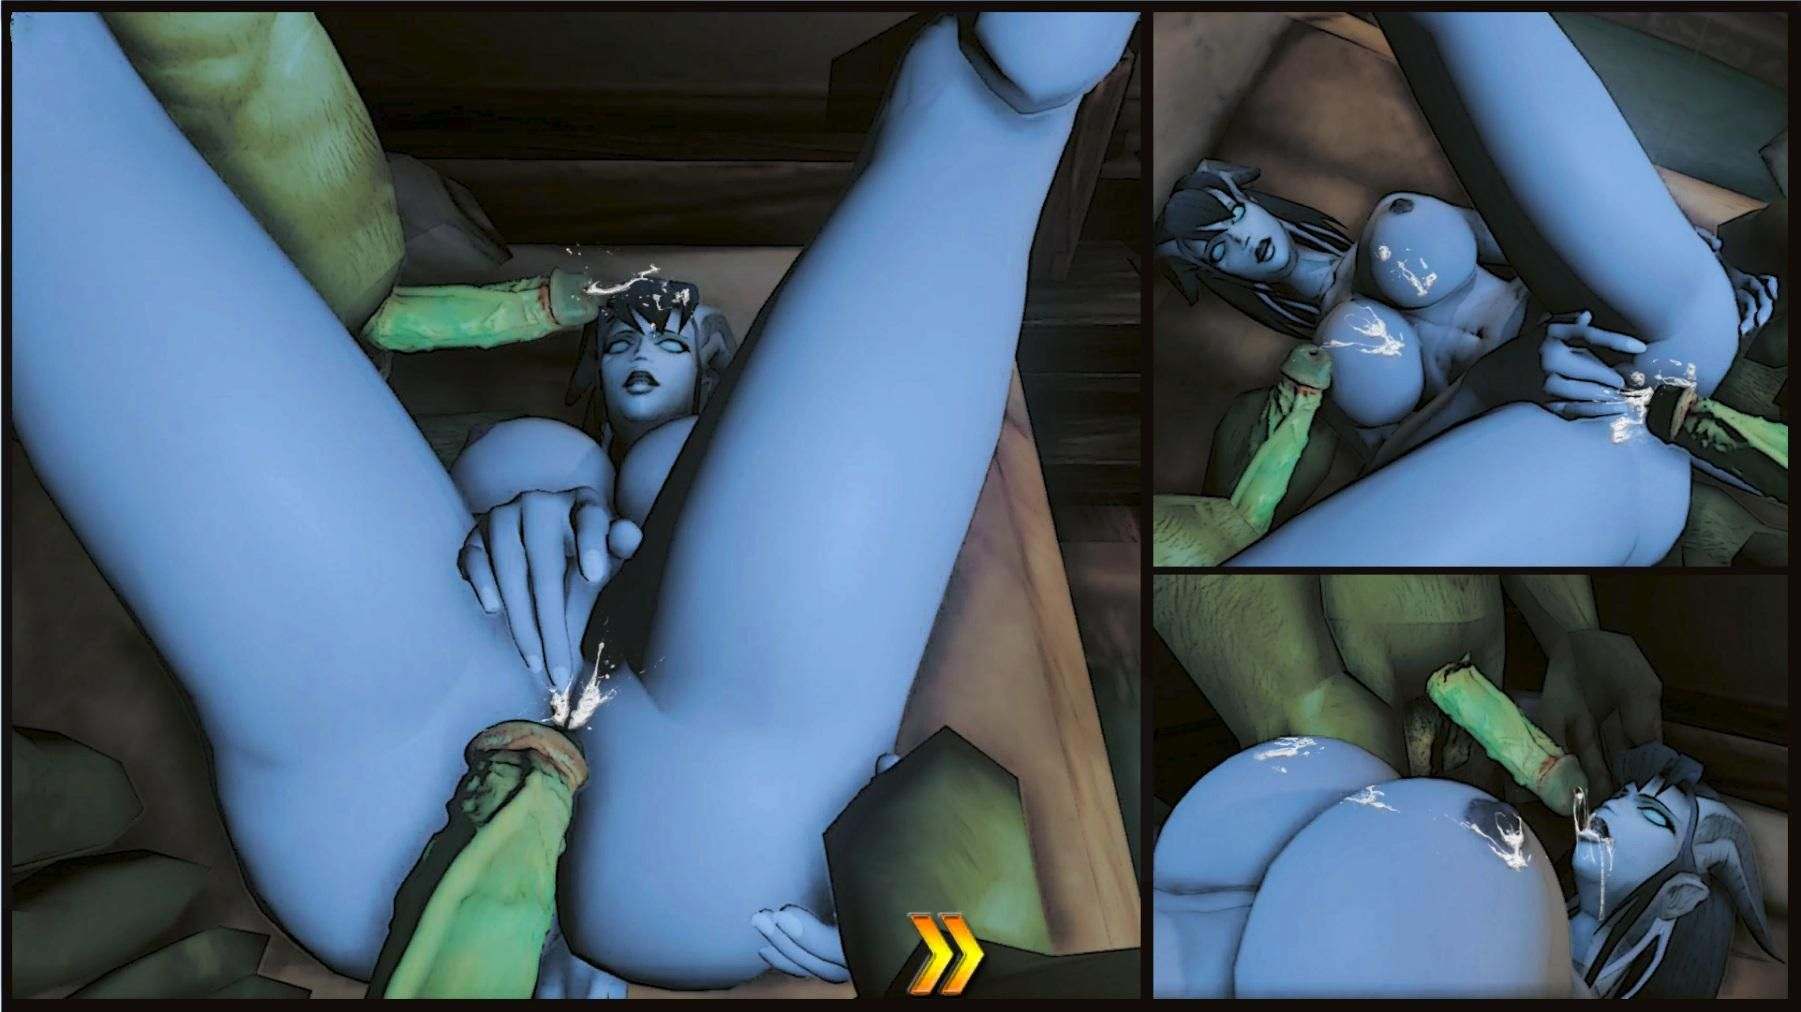 The adventures of daemia whorecraft gameplay erotic pictures